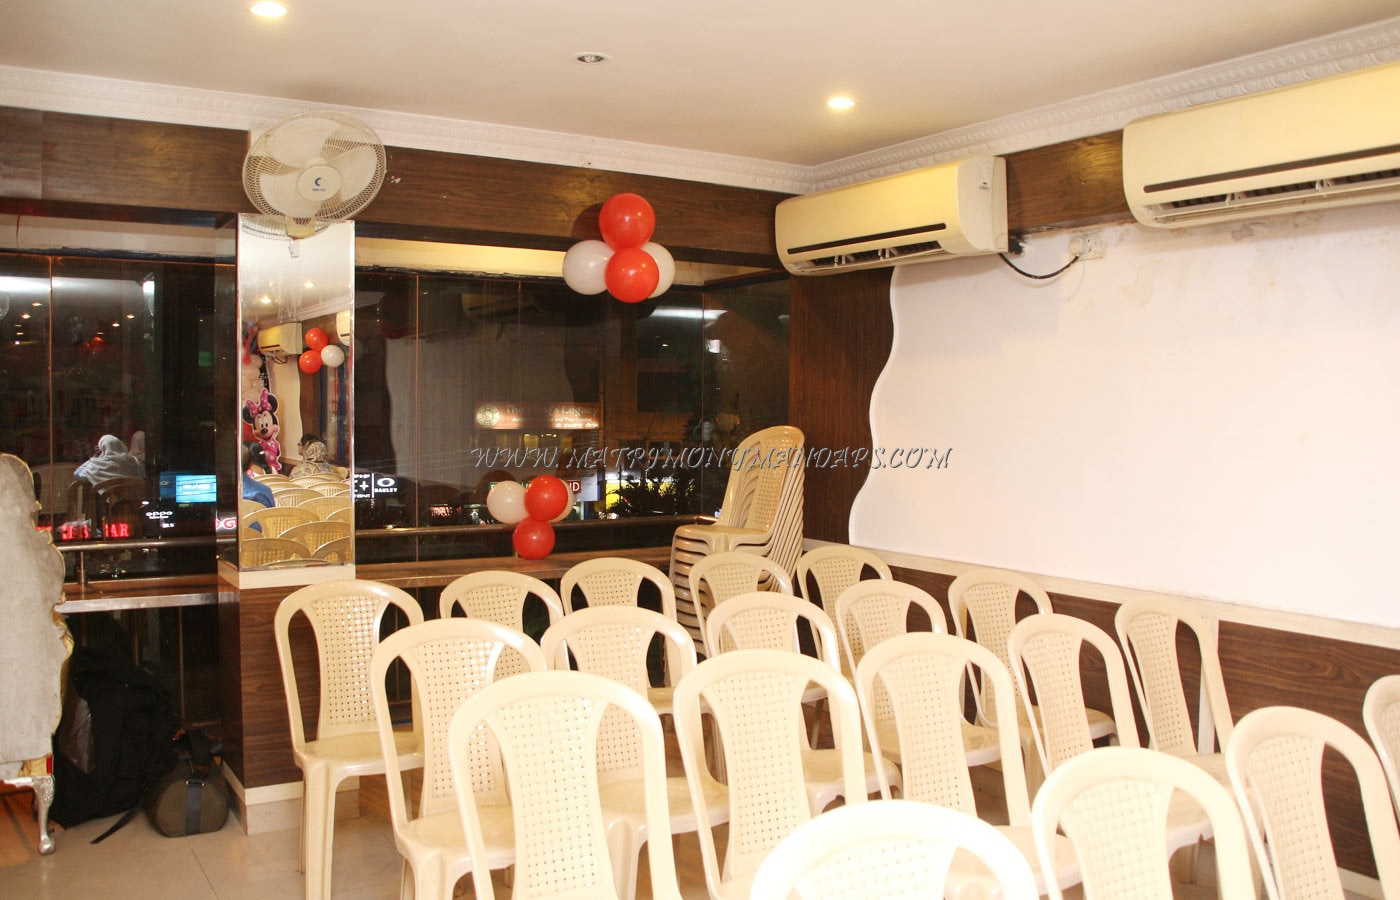 Find More Banquet Halls in RT Nagar